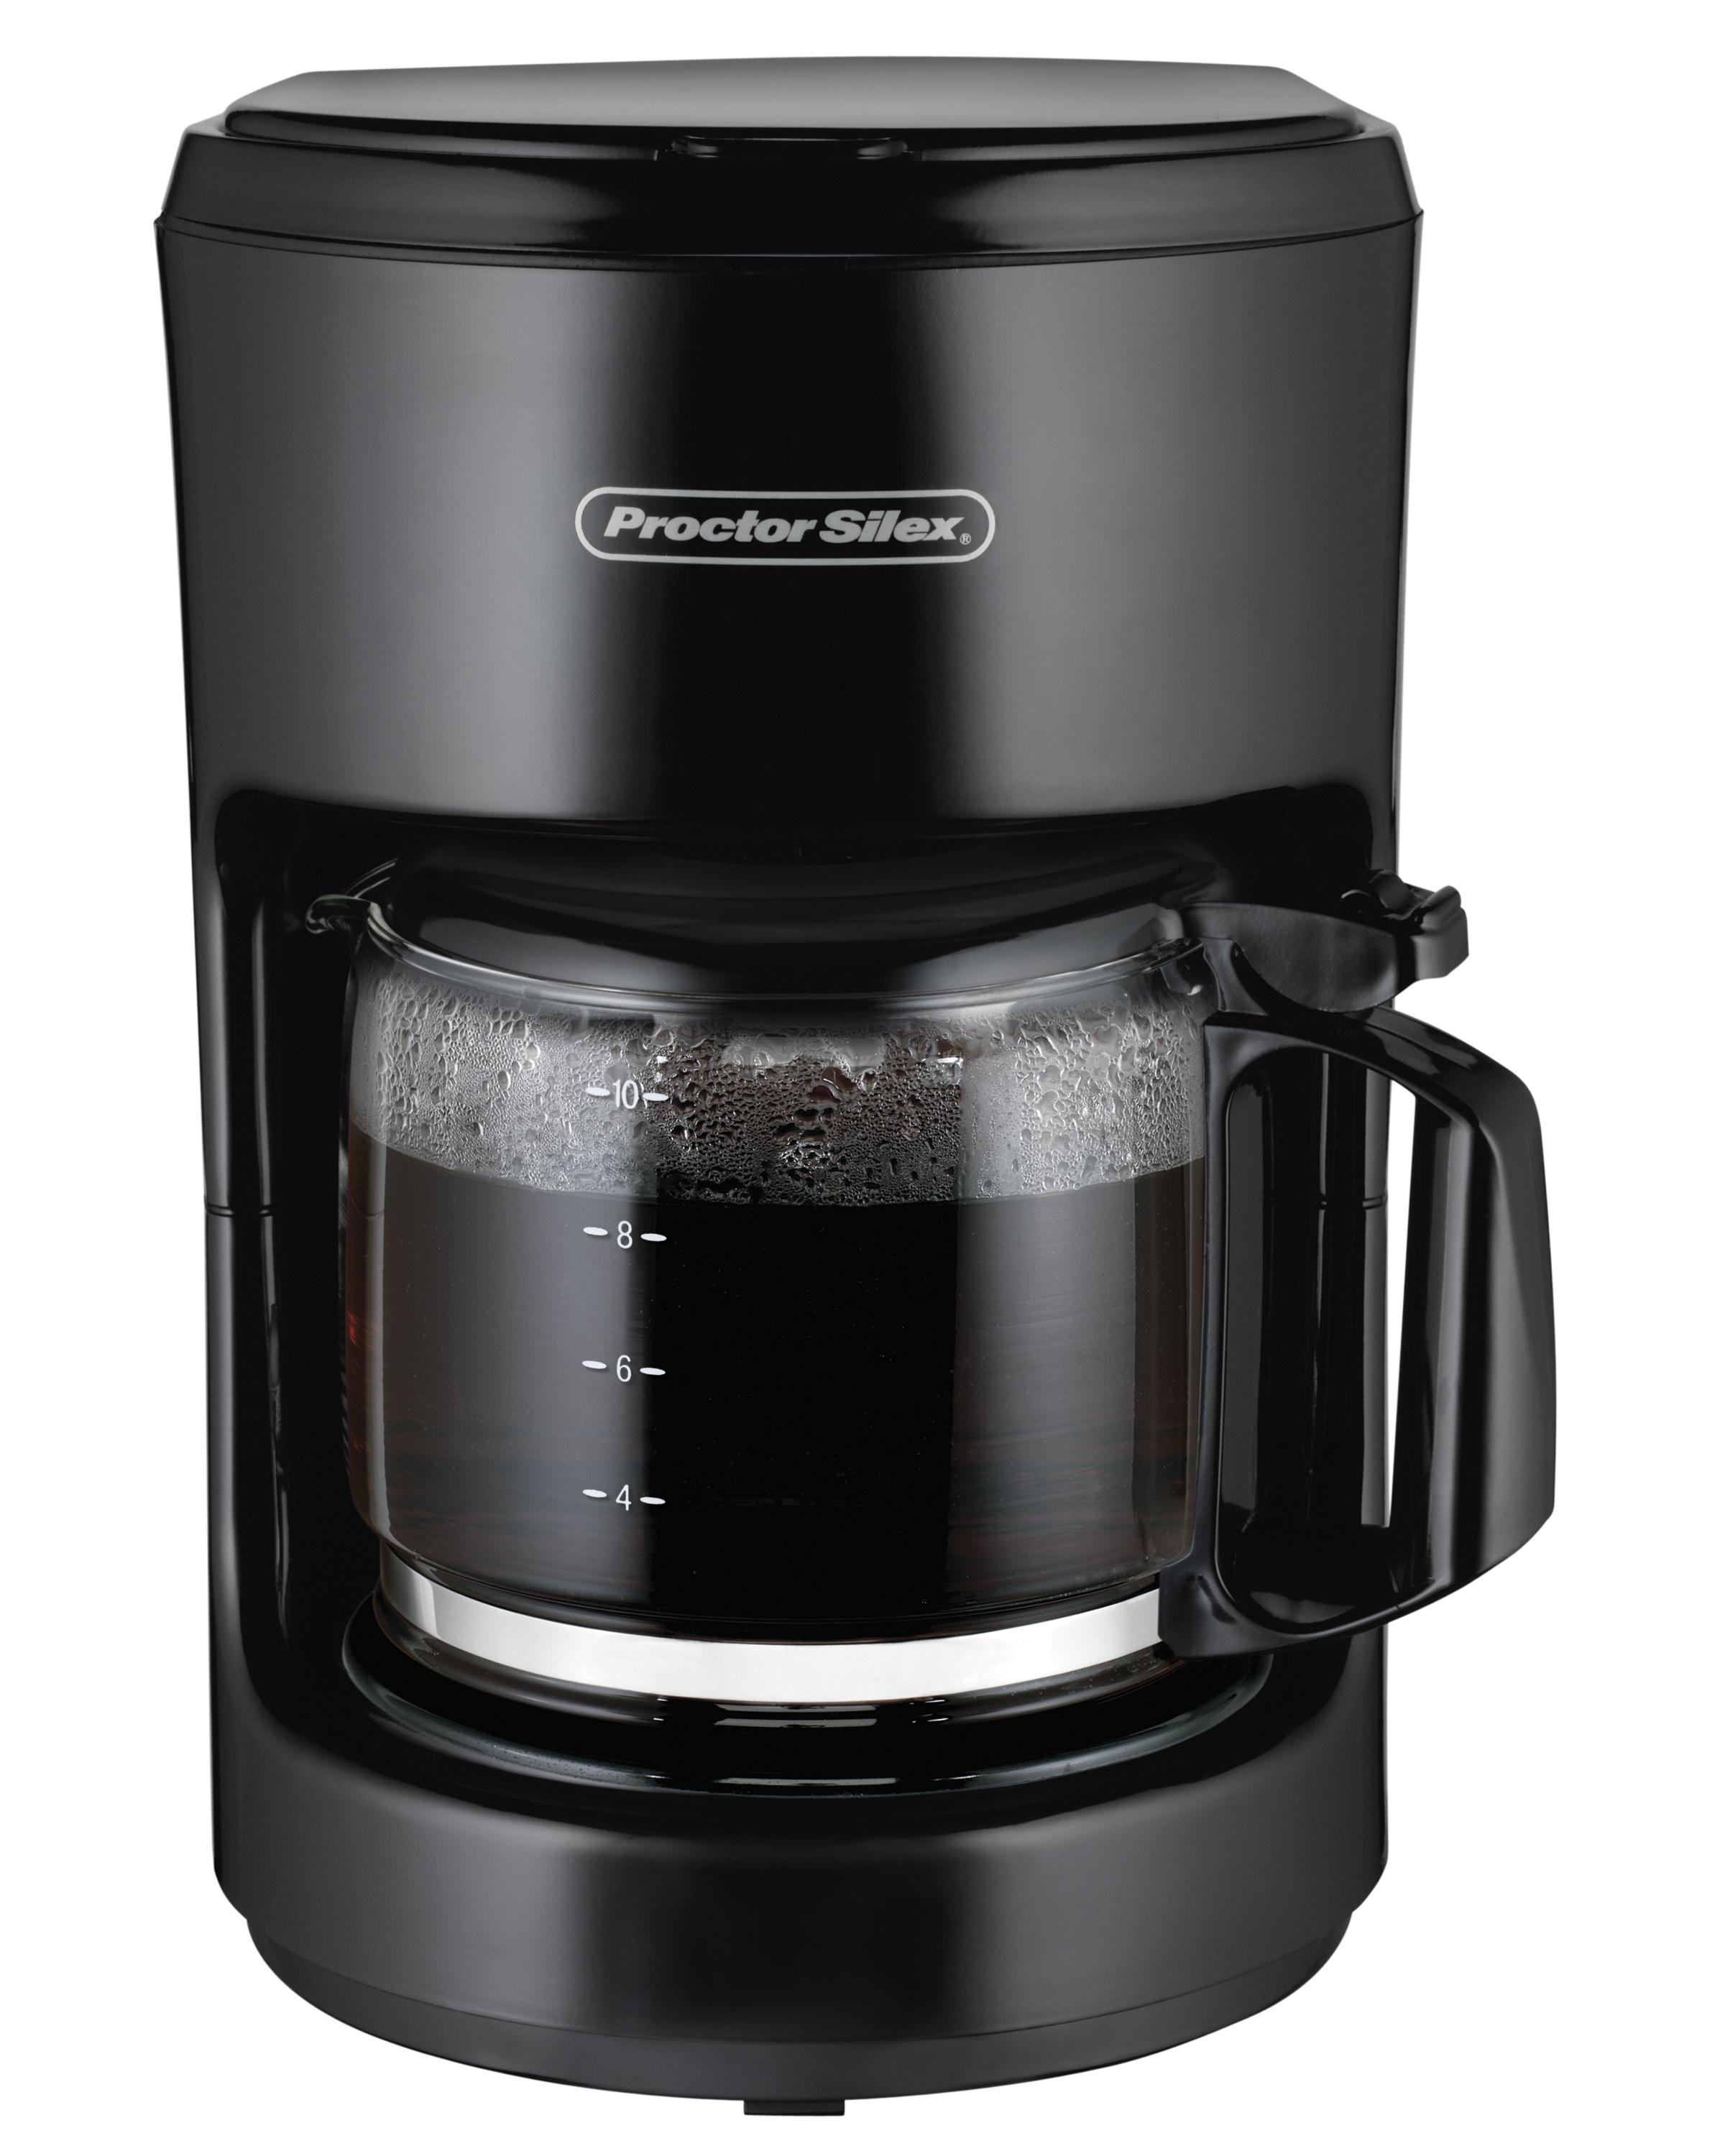 One Cup Coffee Maker Aldi : POLL: Do you make a pot of coffee in the morning as part of your daily routine? - 3 F169BBS